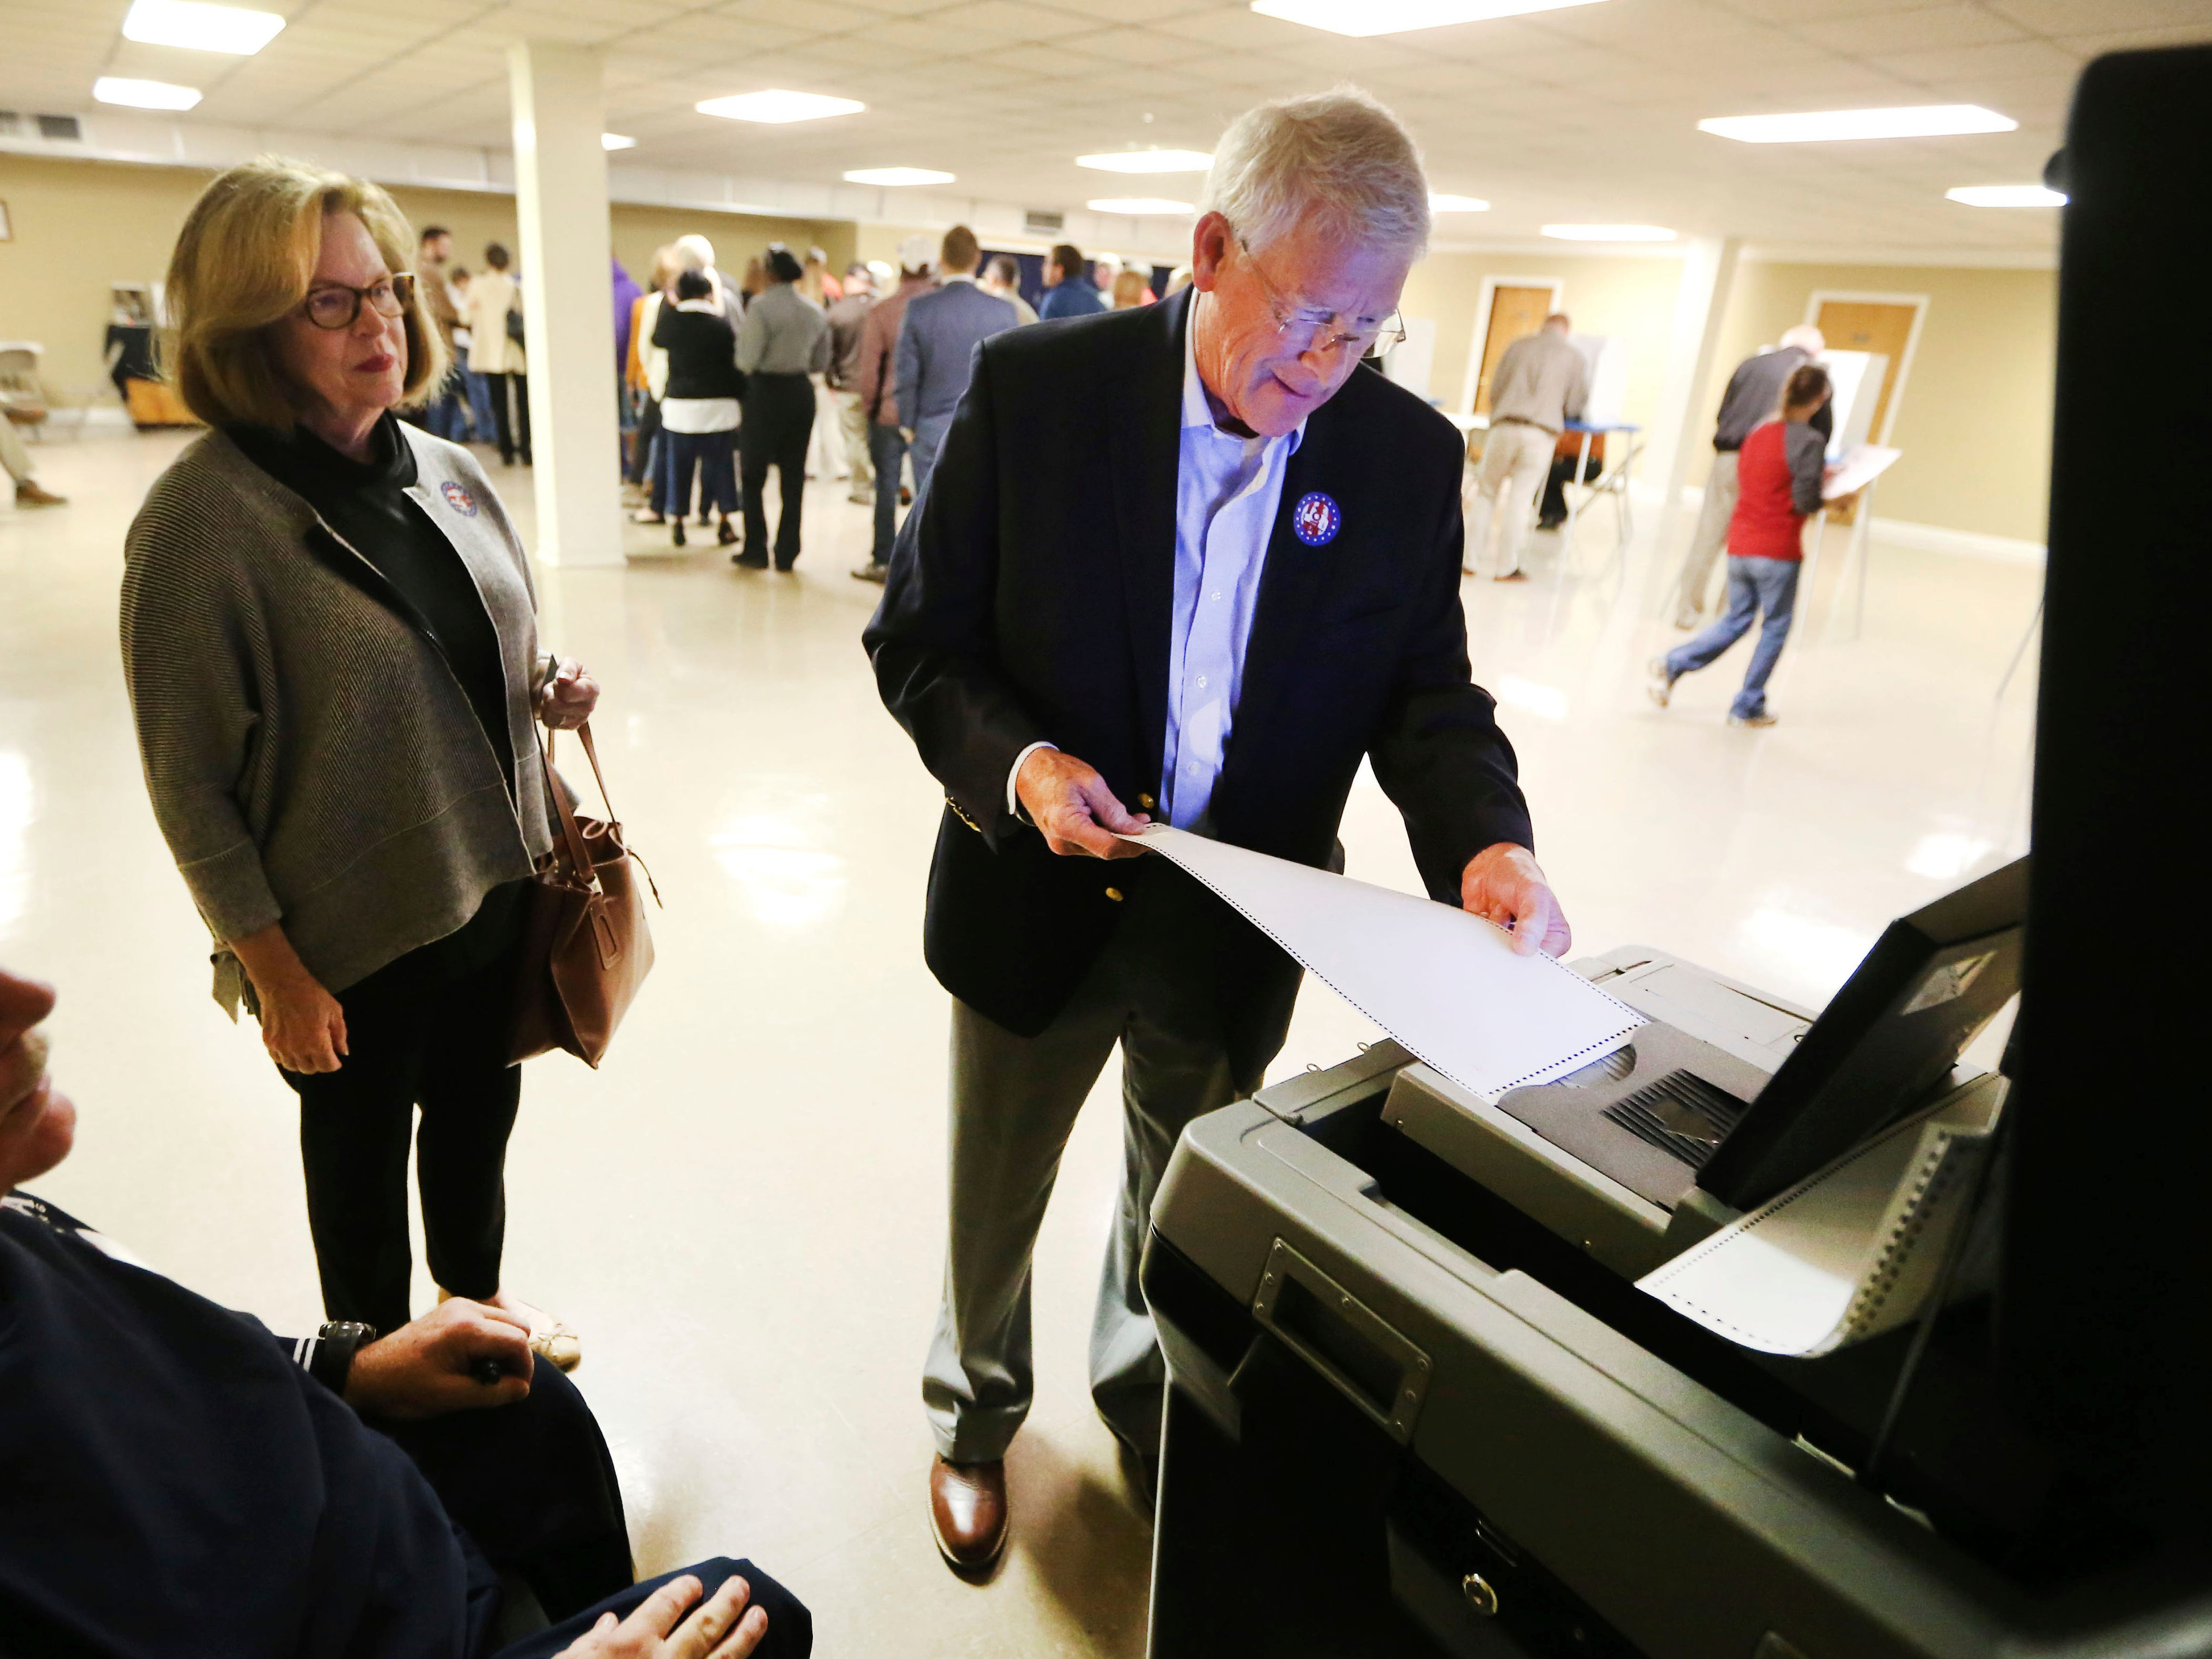 United States Sen. Roger Wicker, R-Miss., right, turns in his ballot with his wife Gayle Wicker by his side, after casting his vote in the midterm elections Tuesday, Nov. 6, 2018, in Tupelo, Miss. Wicker, who seeks reelection, faces several opponents, including State Rep. David Baria, D-Bay St. Louis.